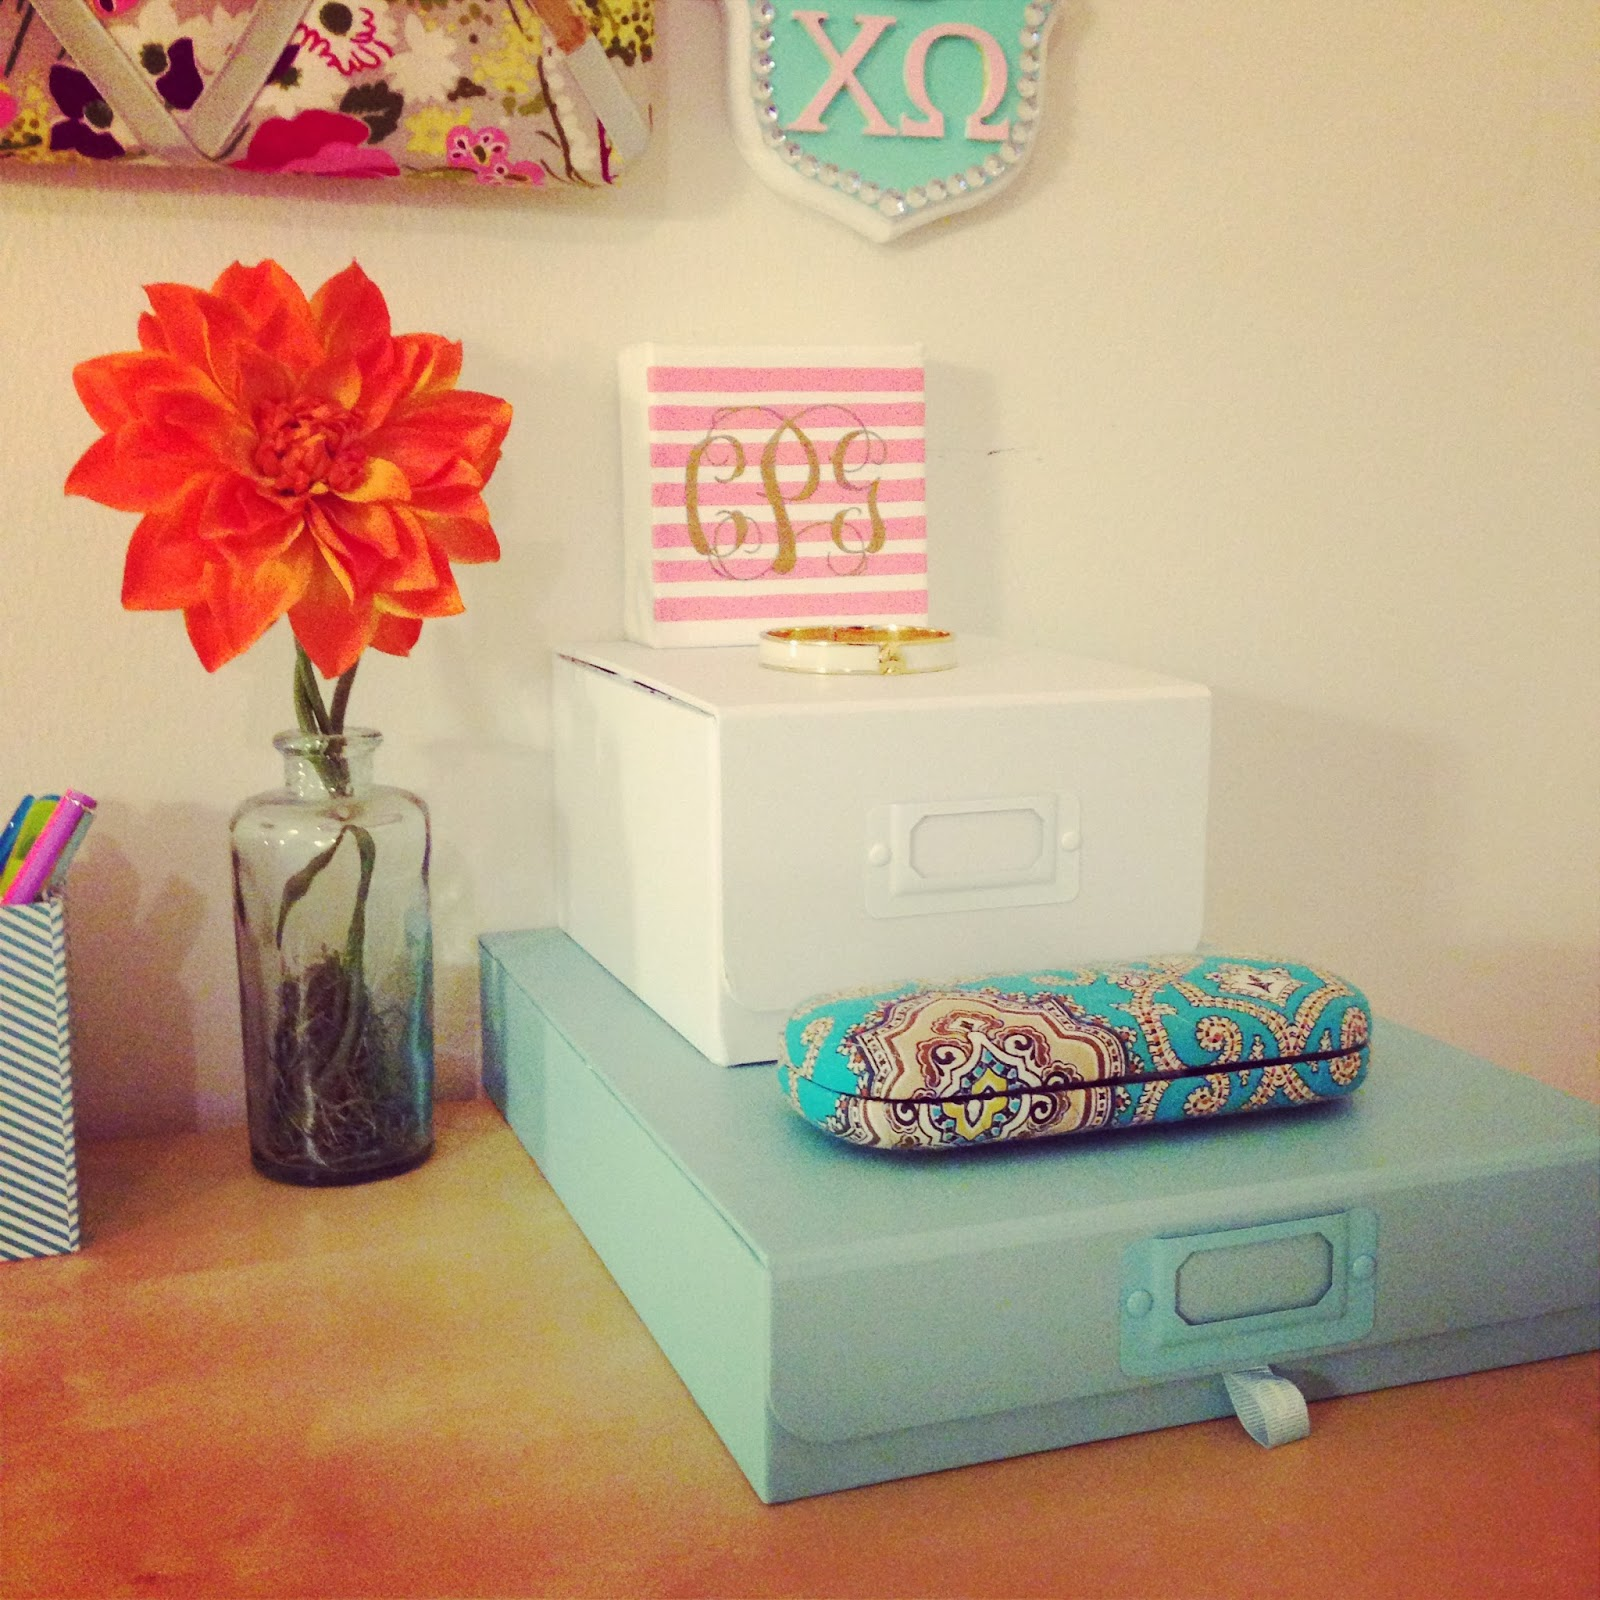 Cotton 39 s pickins - Girly office desk accessories ...